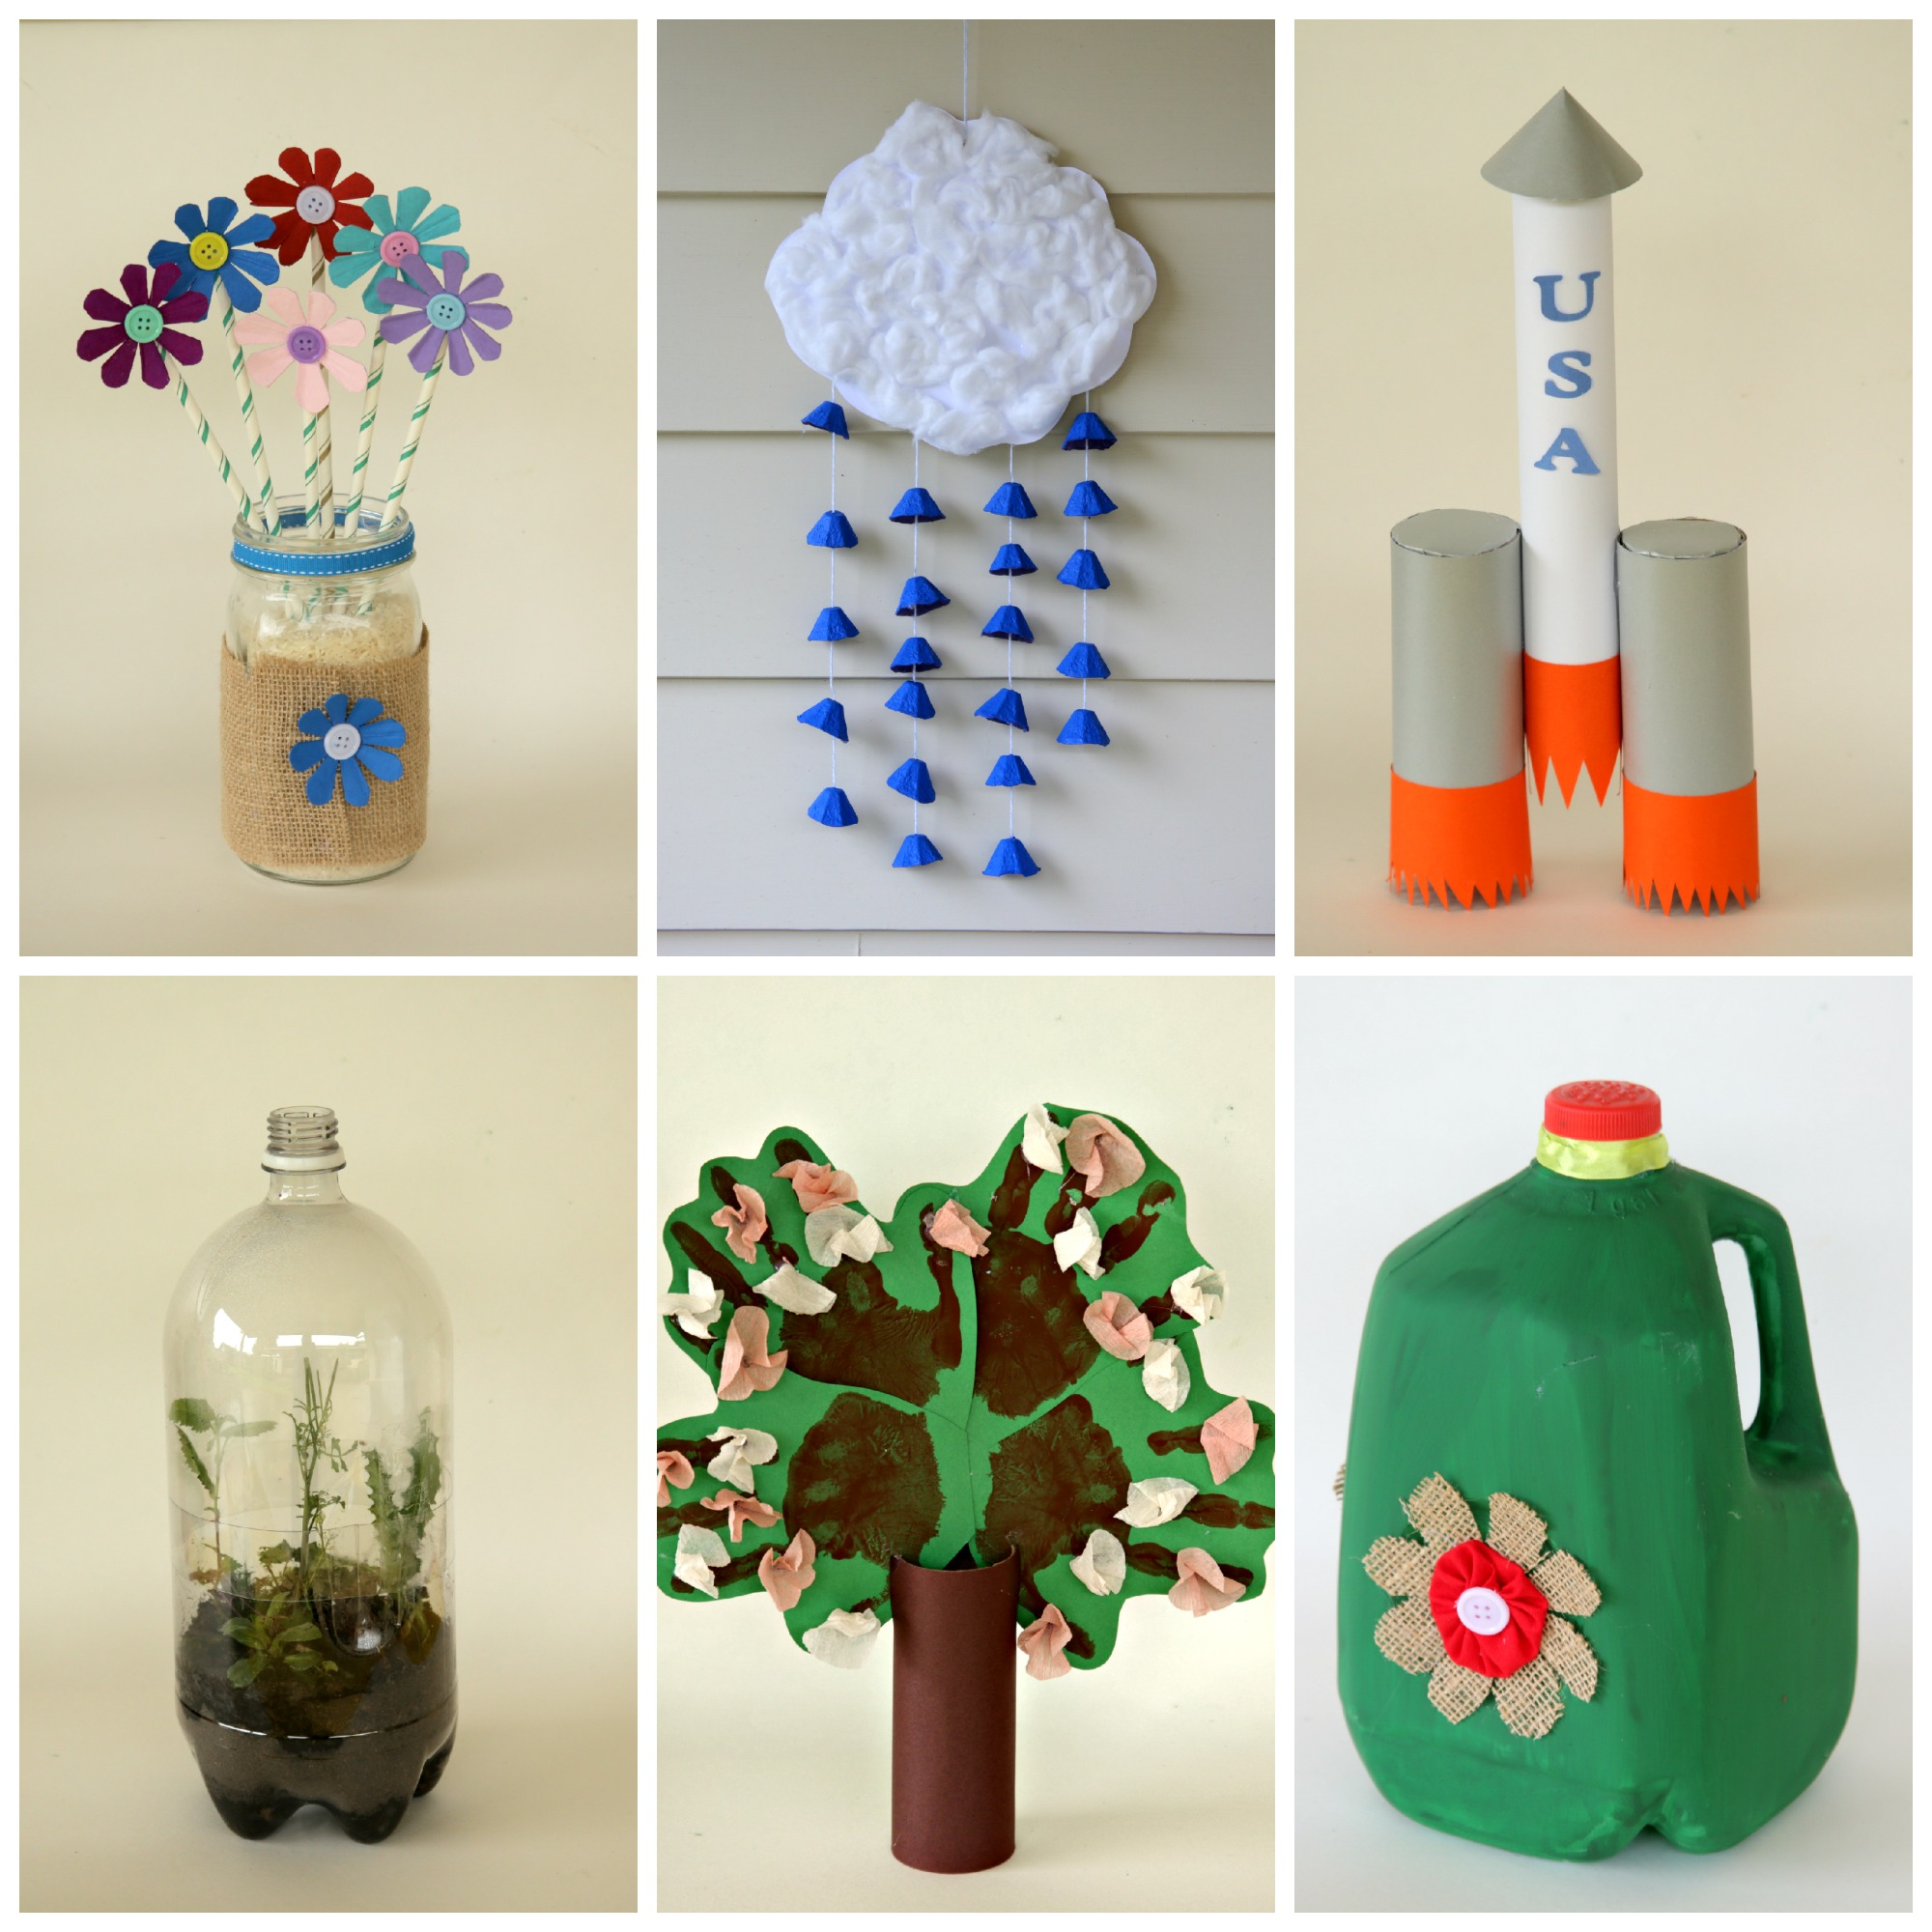 6 Earth Day Crafts From Recycled Materials · Kix Cereal